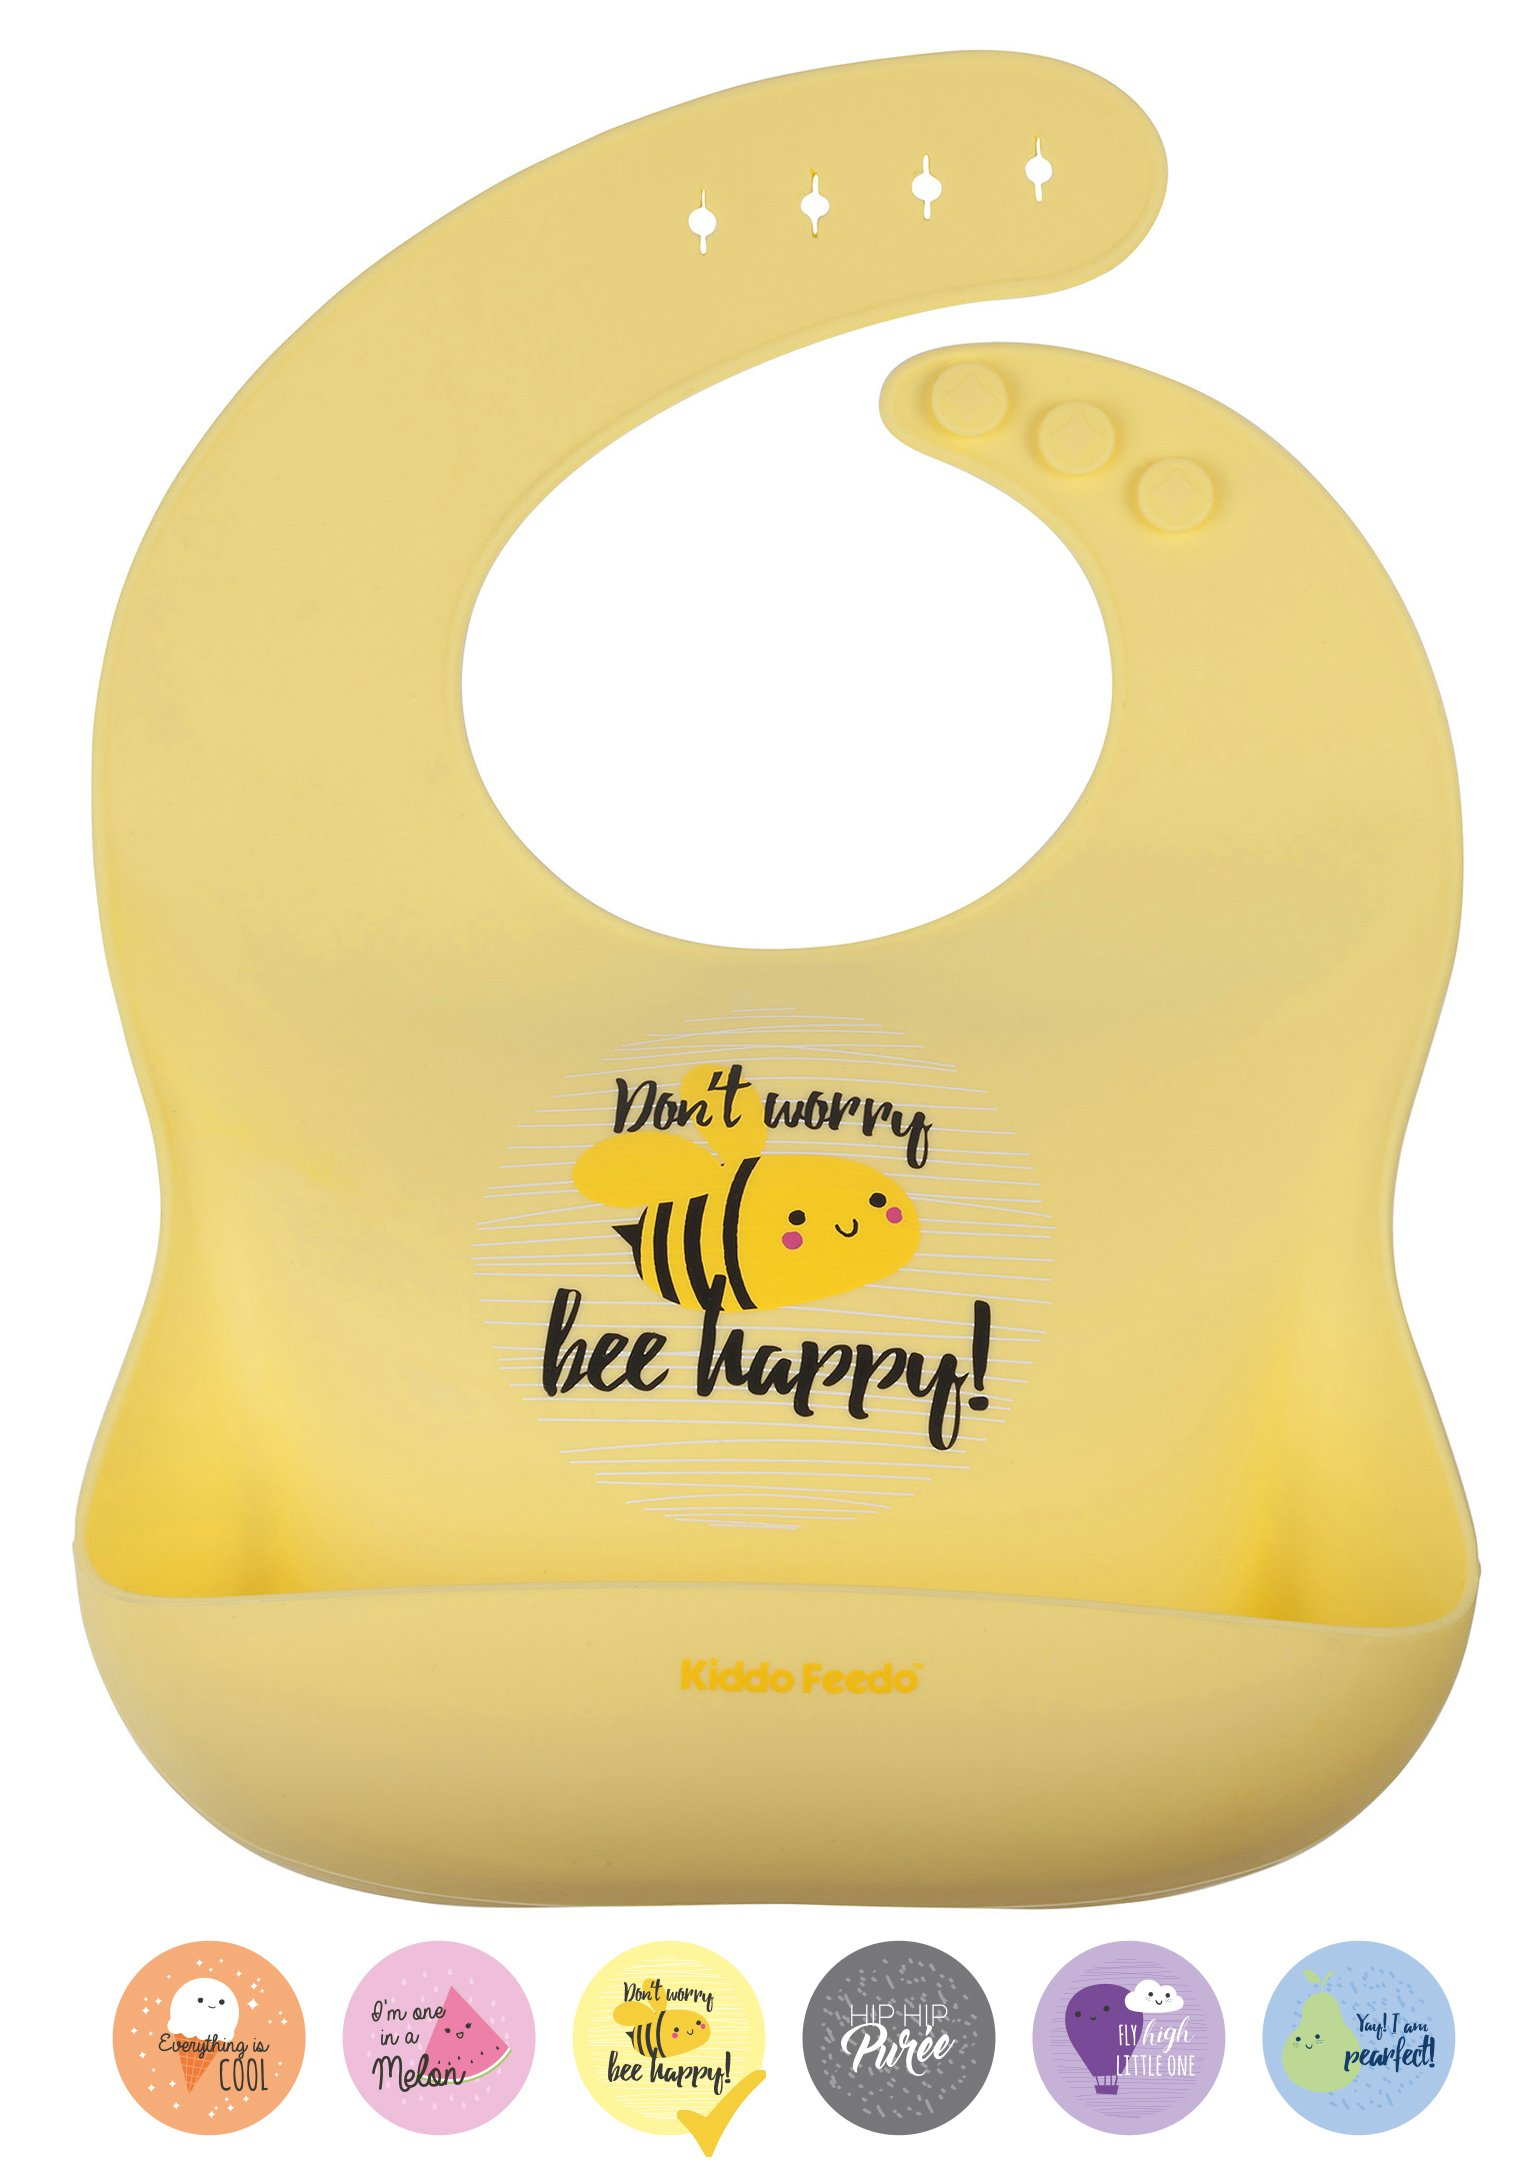 KIDDO FEEDO Feeding Bib with a Large Food Catcher Pocket - 6 Cute Designs Available - Portable, Waterproof and Easy-Clean - Yellow